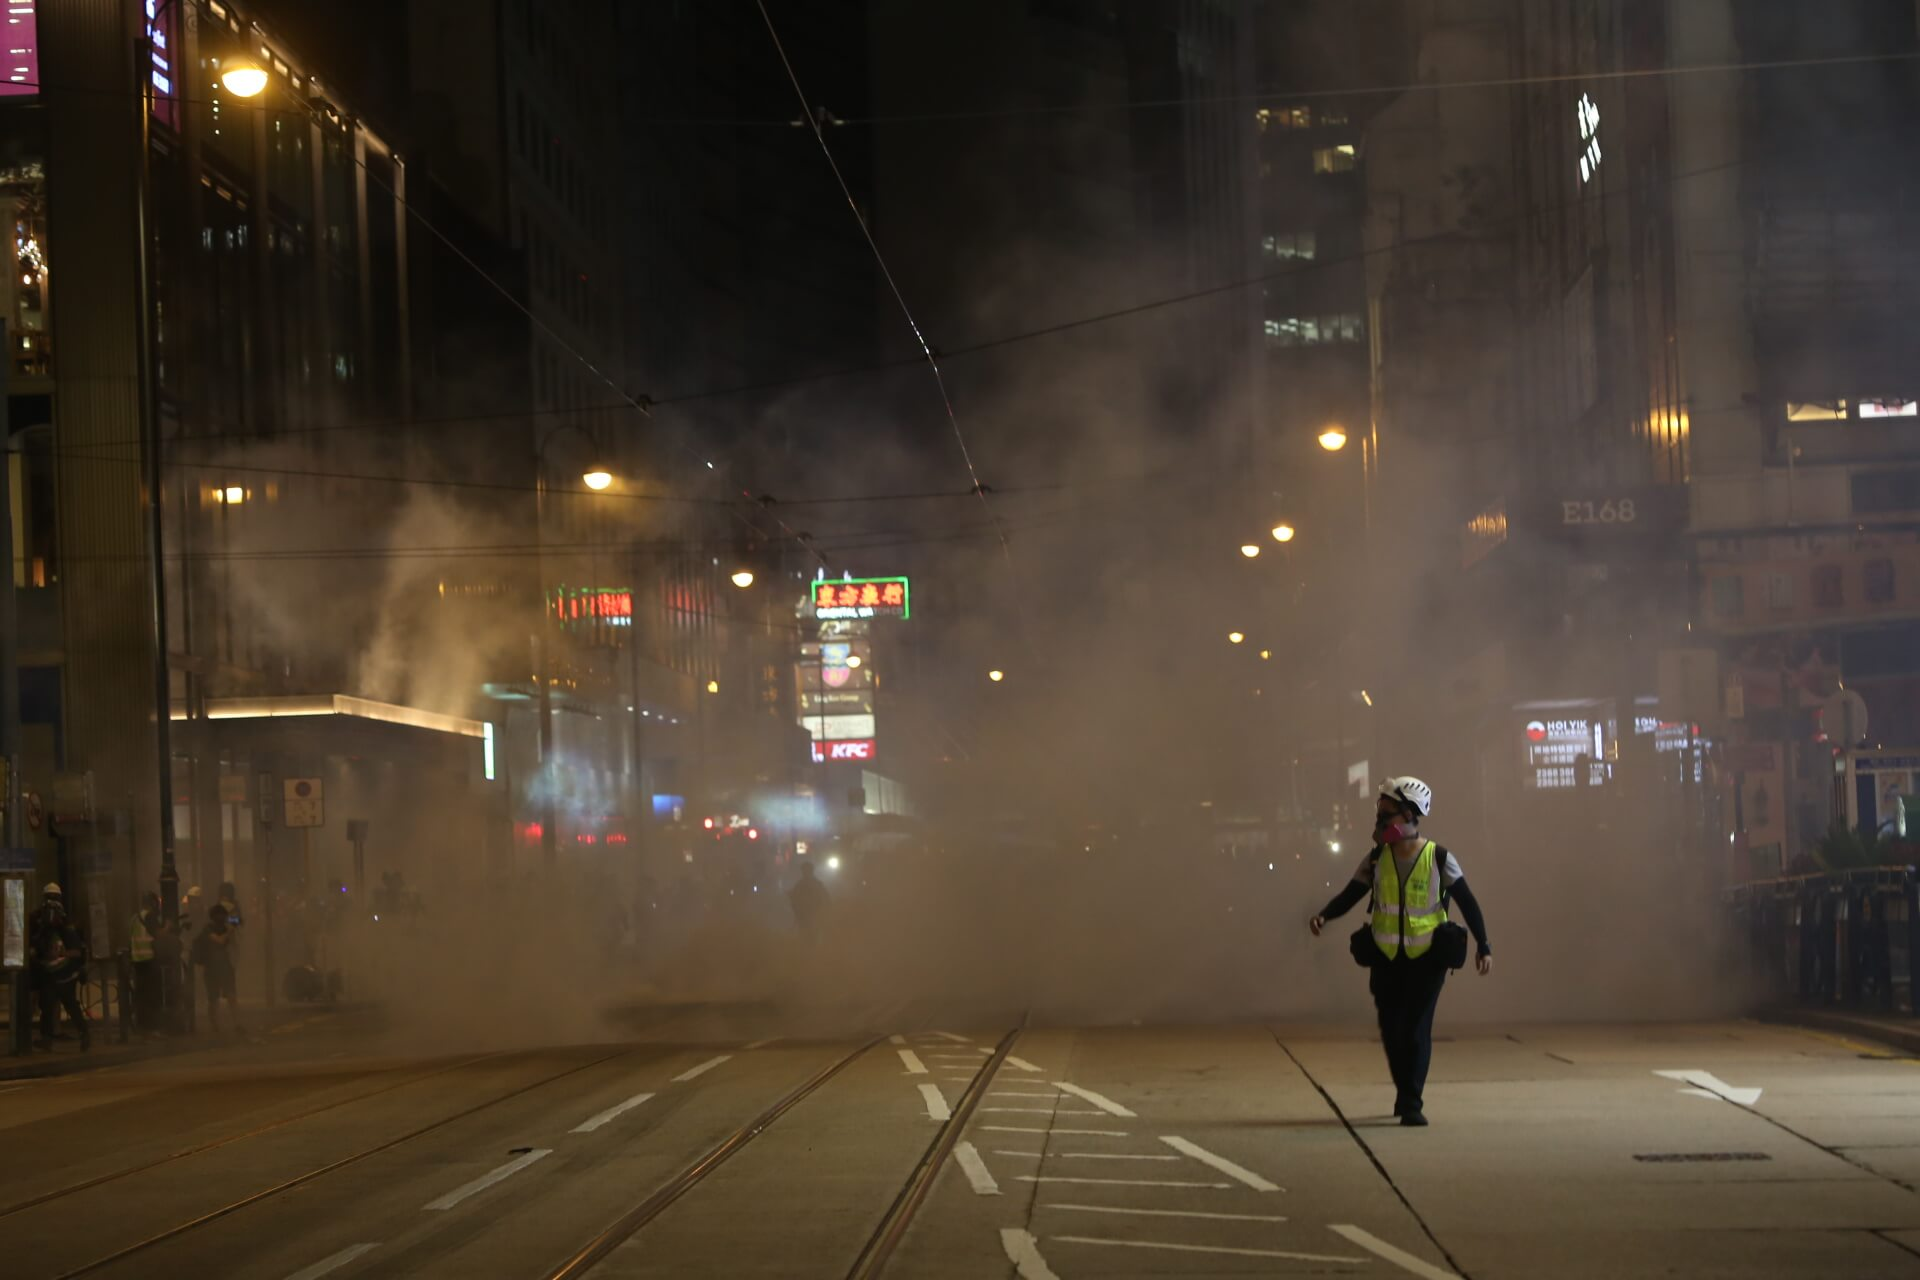 A journalist runs away from tear gas fired on the streets near Lan Kwai Fong, a popular nightlife district in Hong Kong. © Katherine Cheng / Flickr